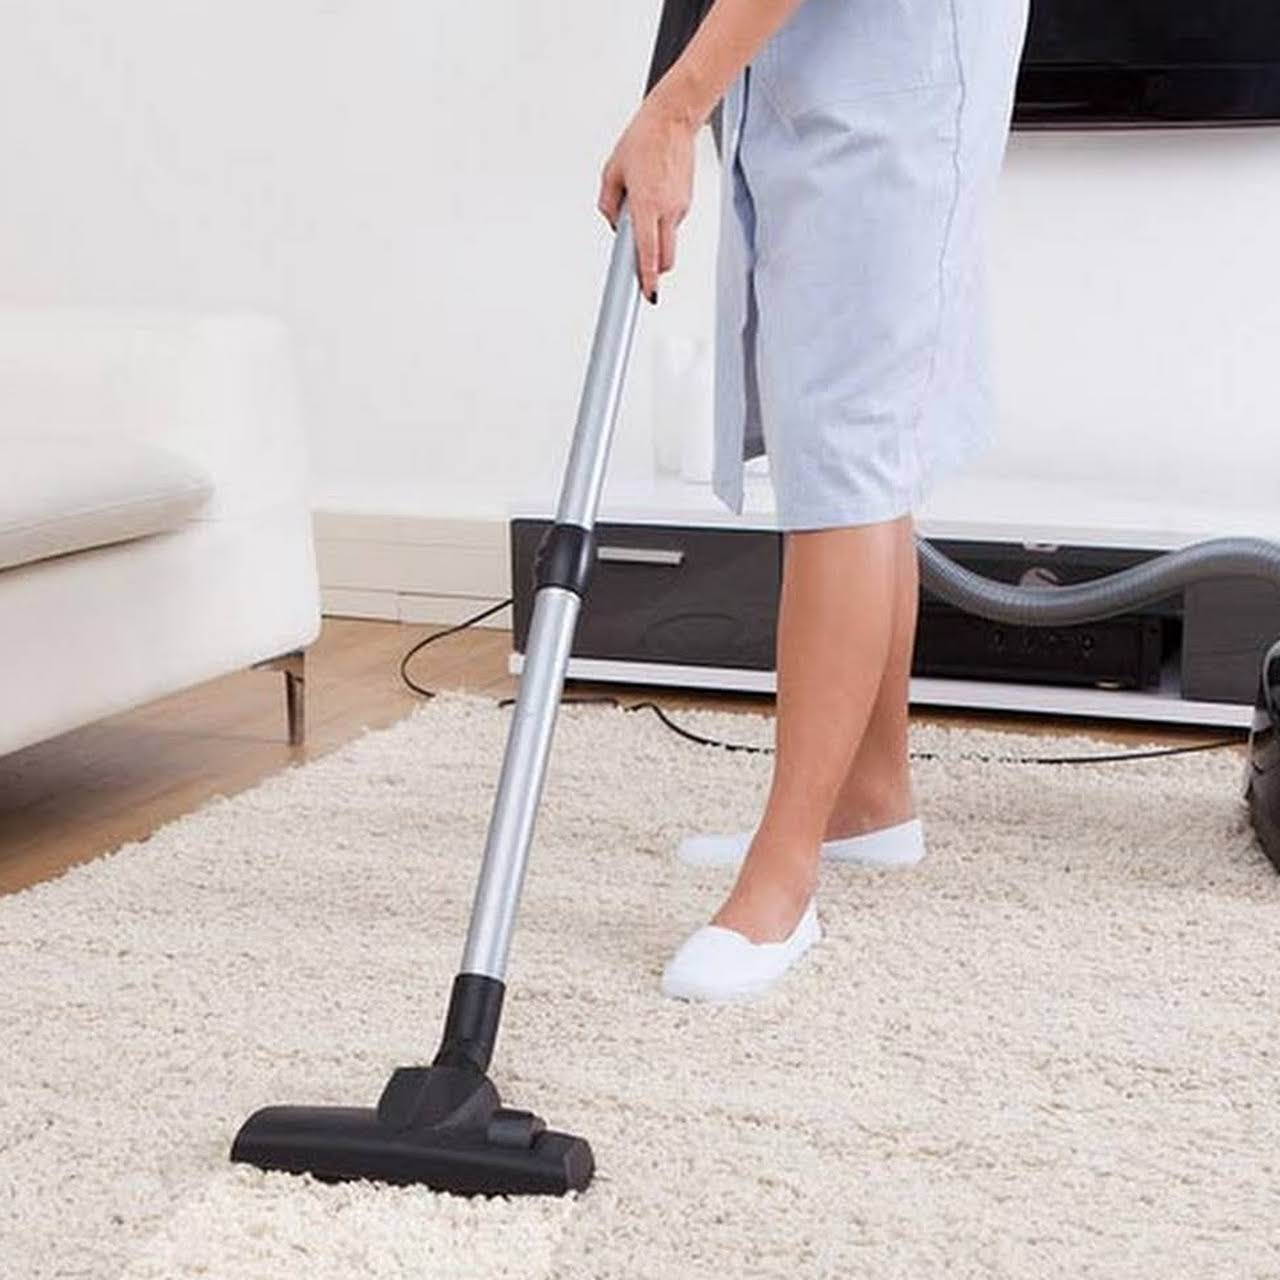 North Of The Bay Carpet Care Residential Commercial